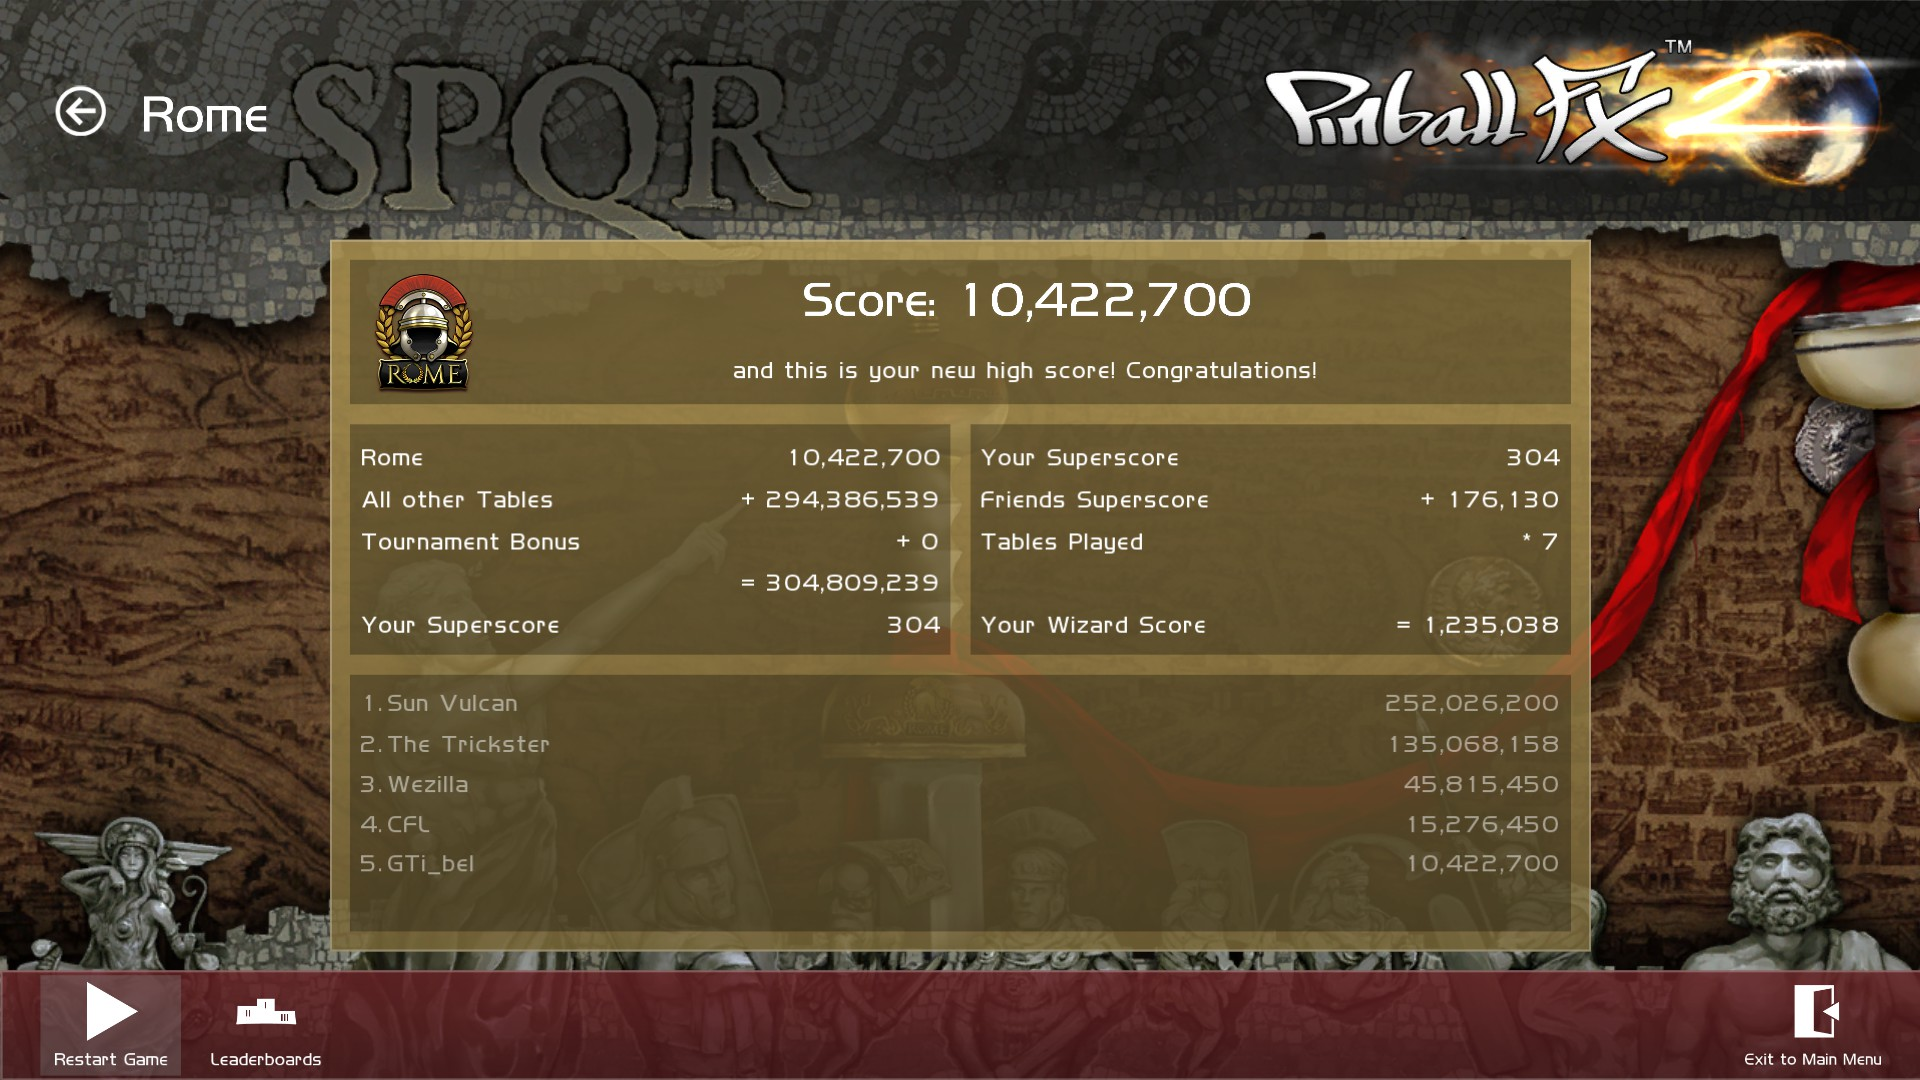 GTibel: Pinball FX 2: Rome (PC) 10,422,700 points on 2018-03-03 06:29:55